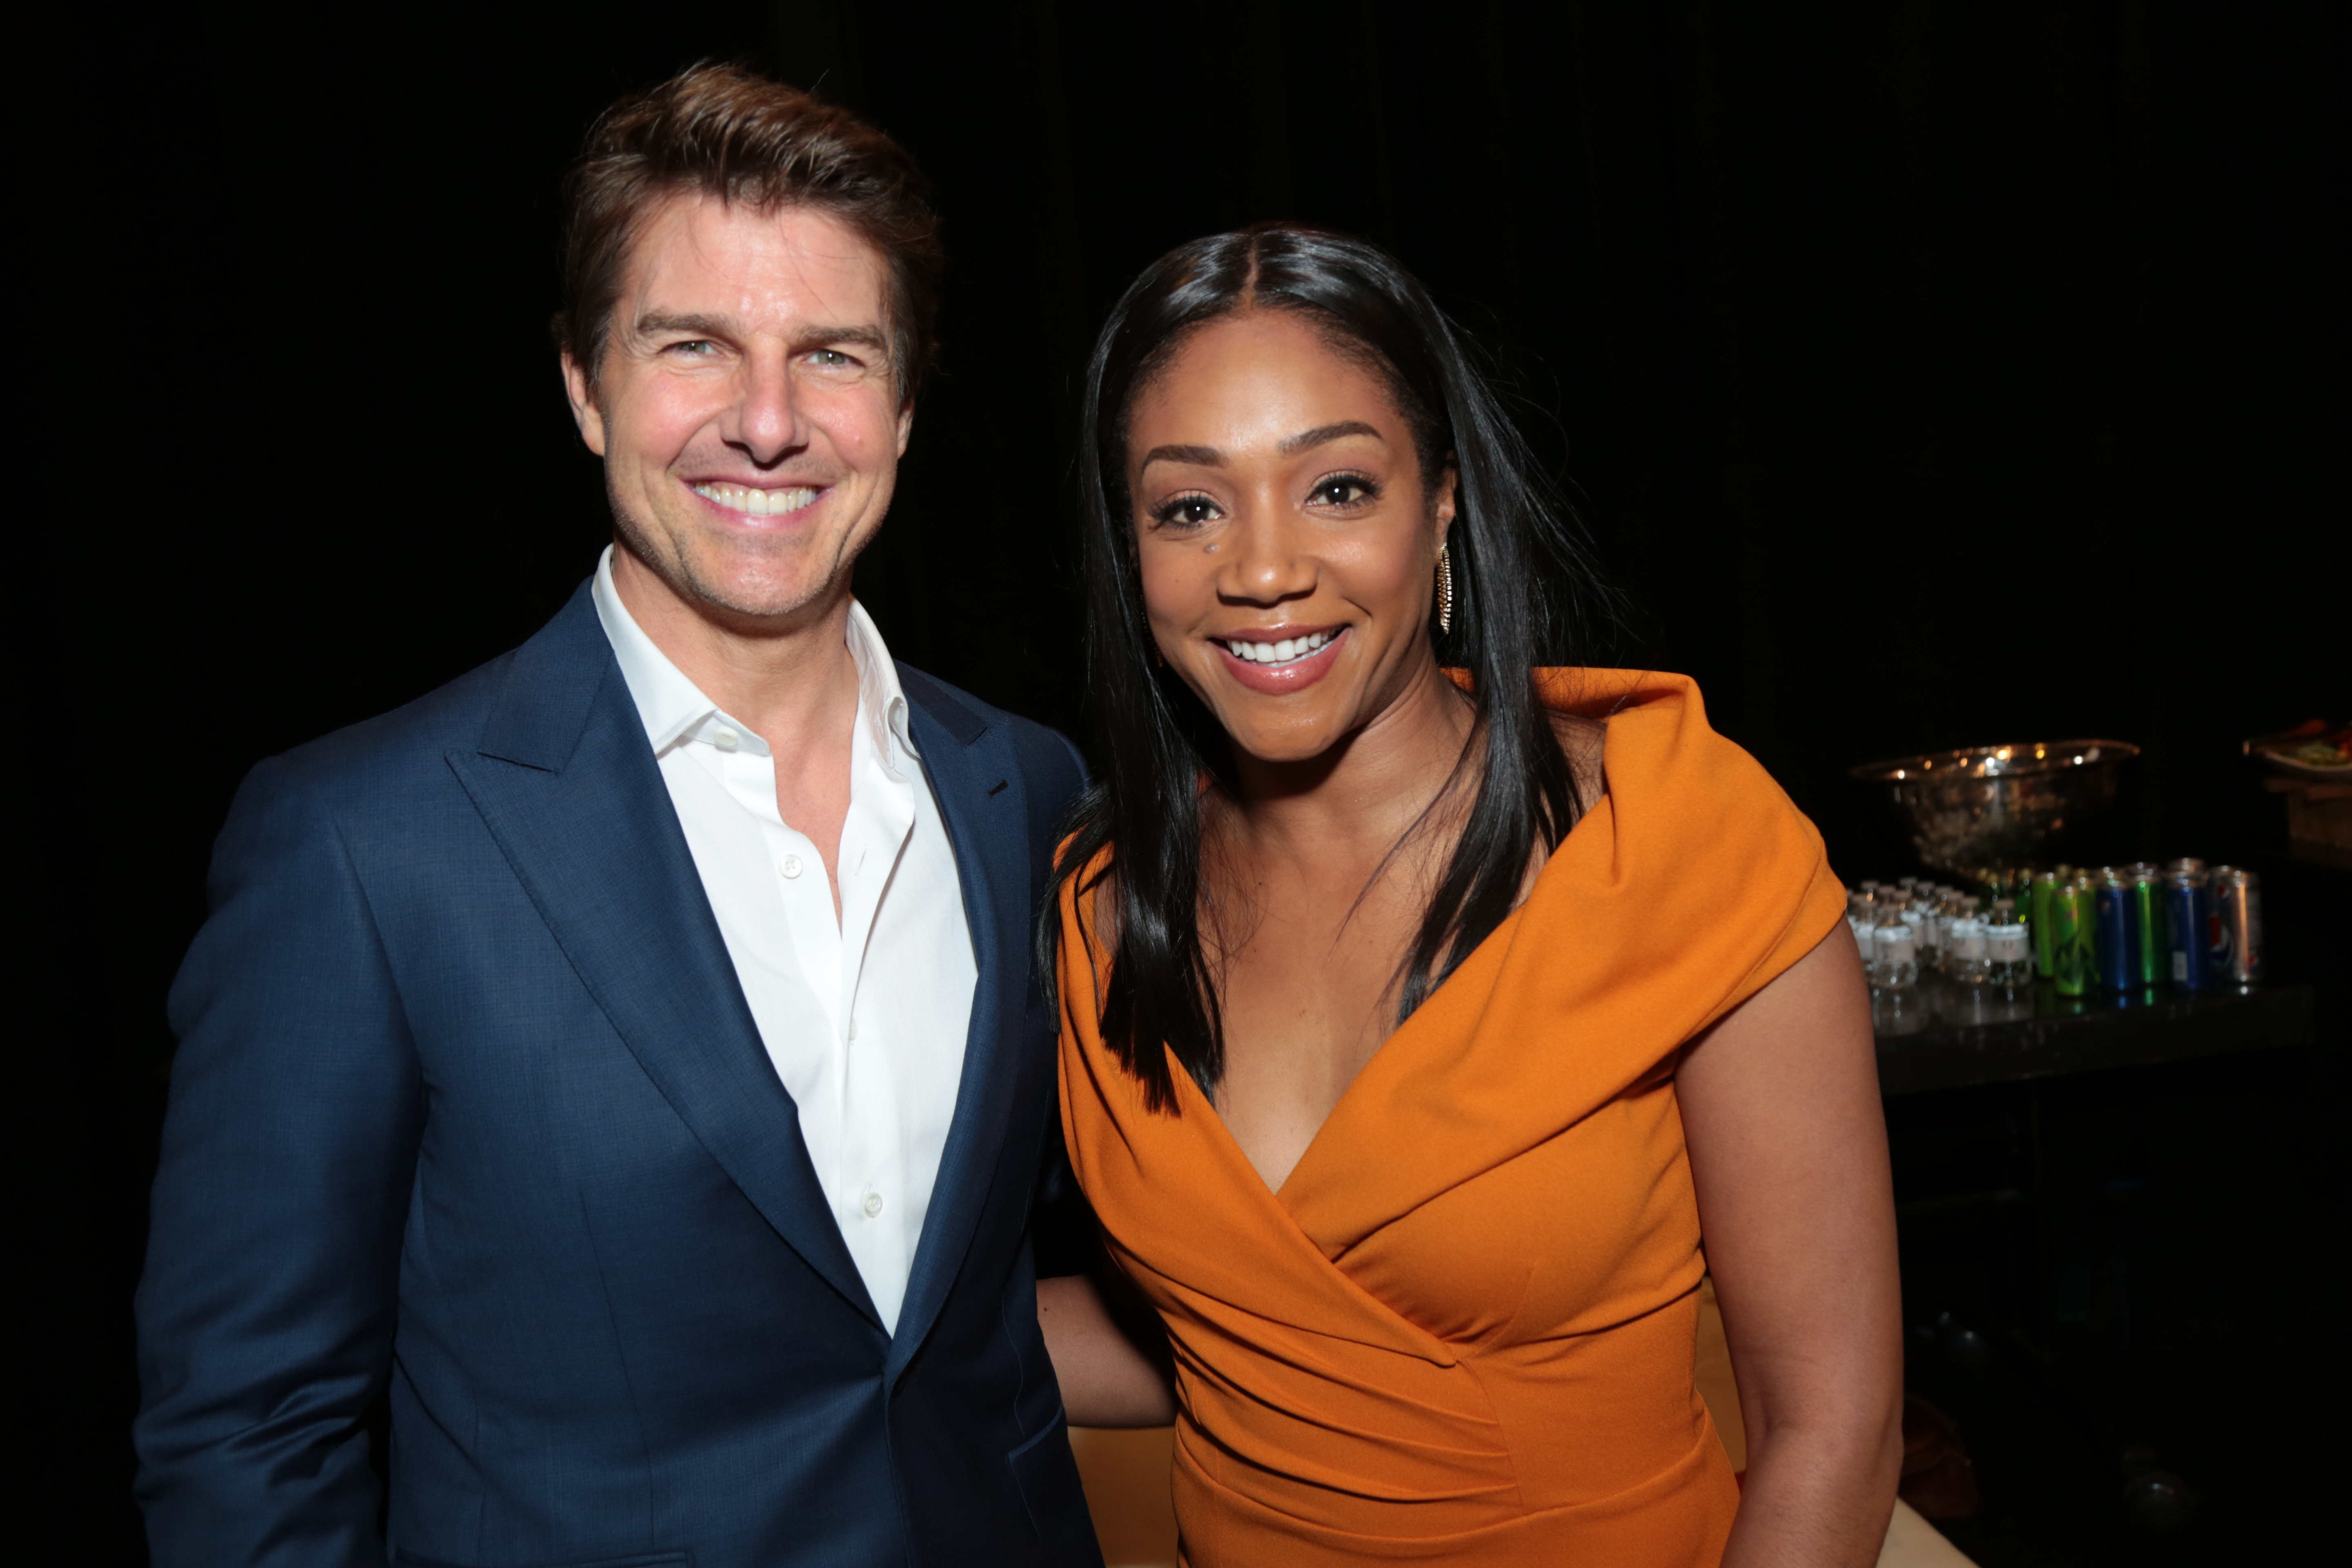 Tom Cruise and Tiffany Haddish attend the Cinemacon 2018 for the Paramount Pictures Presentation in Las Vegas on April 25, 2018.